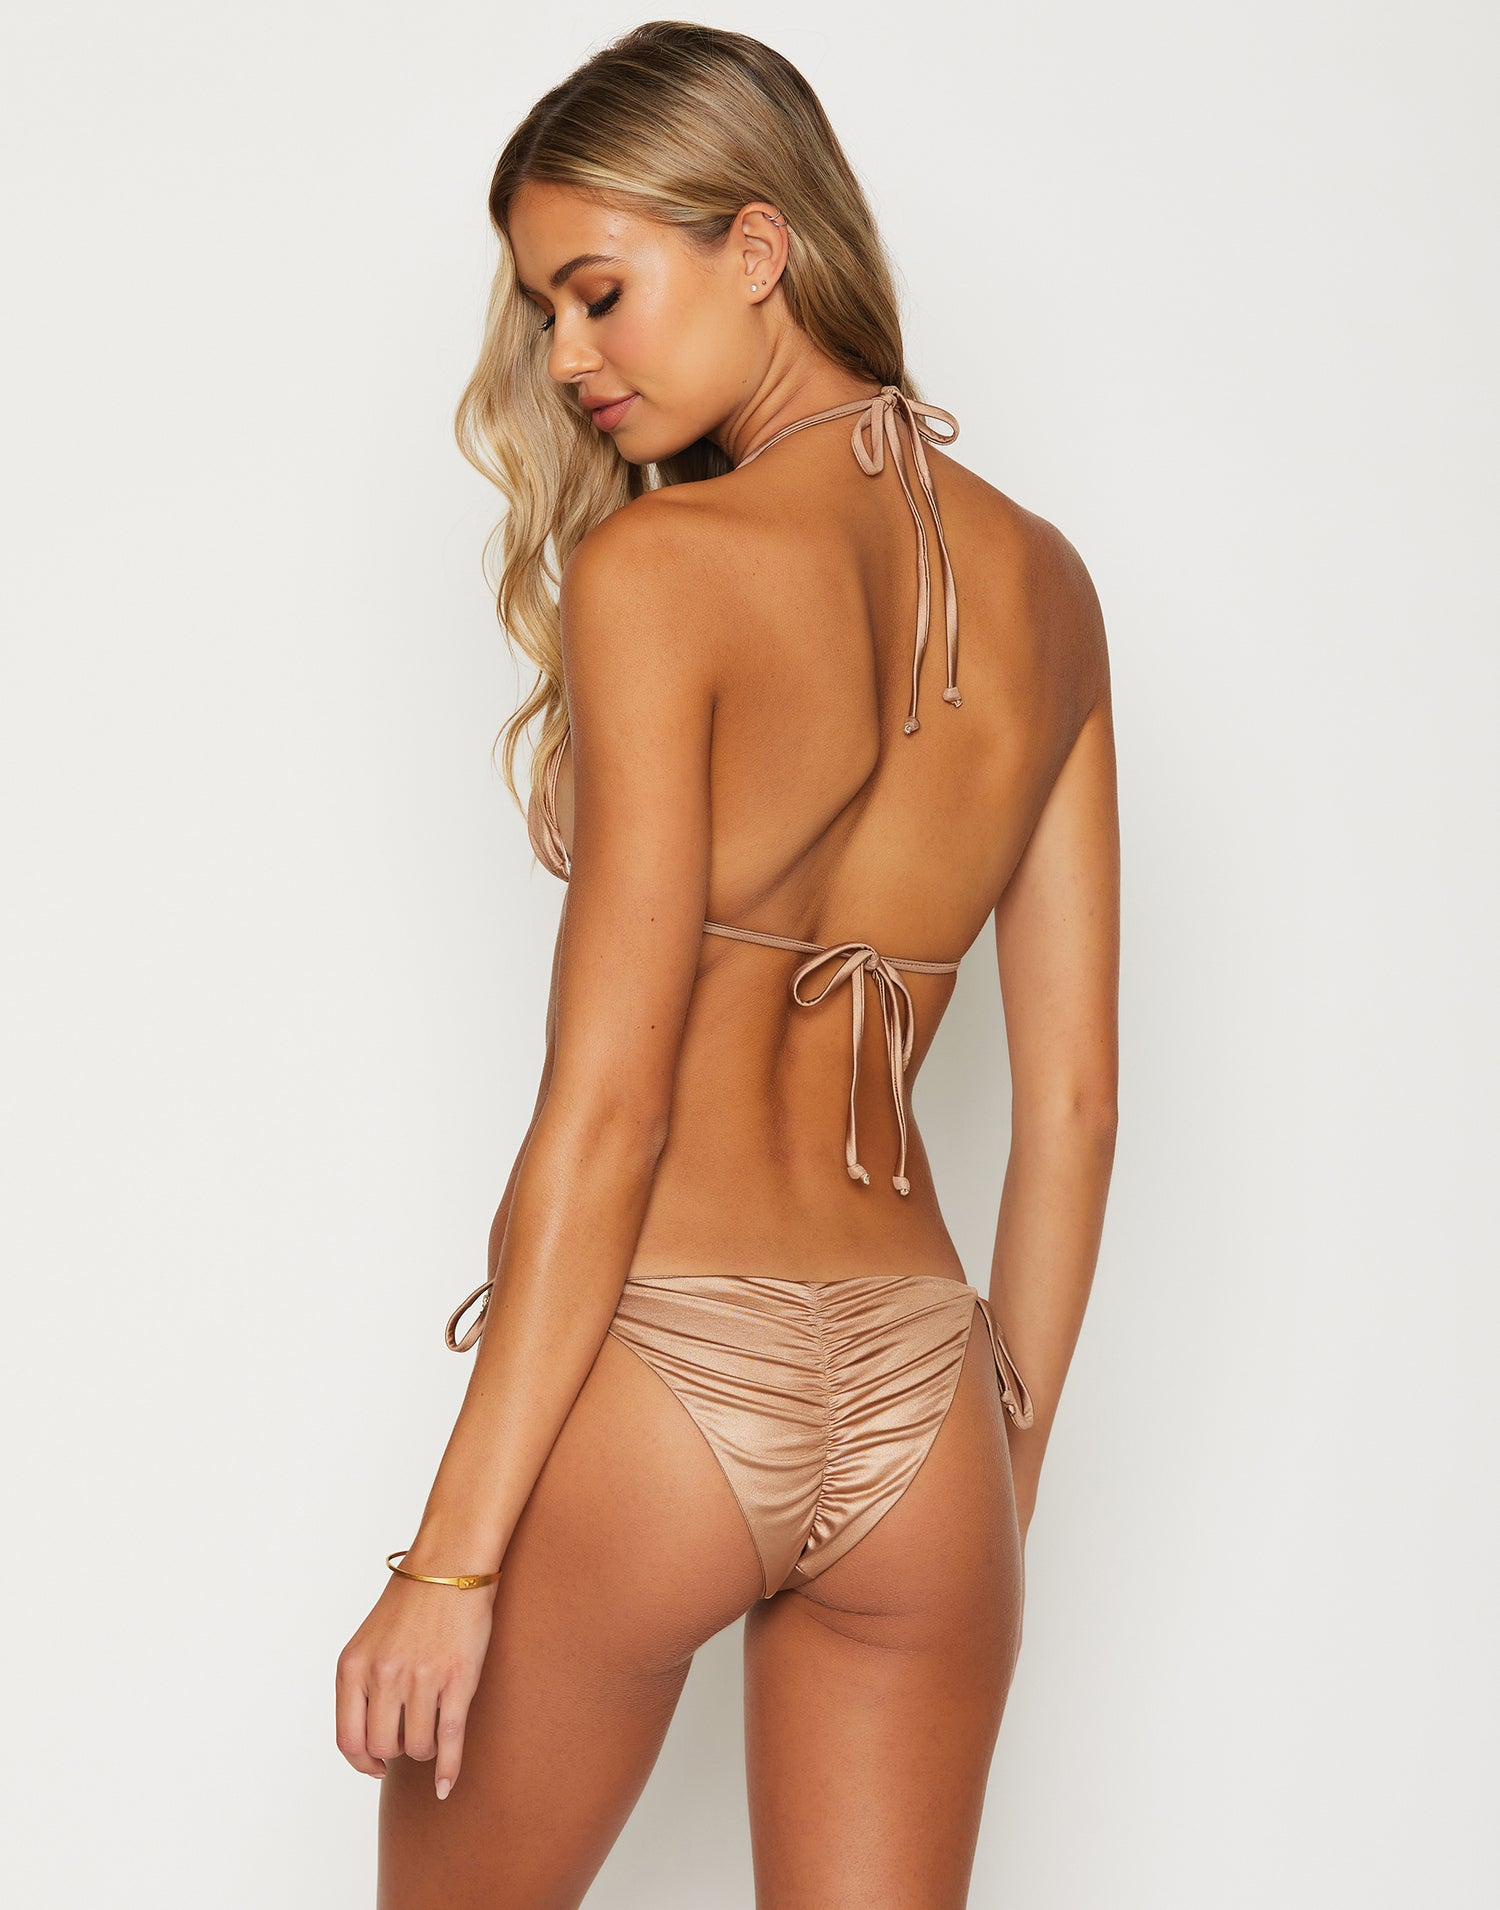 Paisley Triangle Bikini Top in Brown Sugar with Gold Hardware - Back View